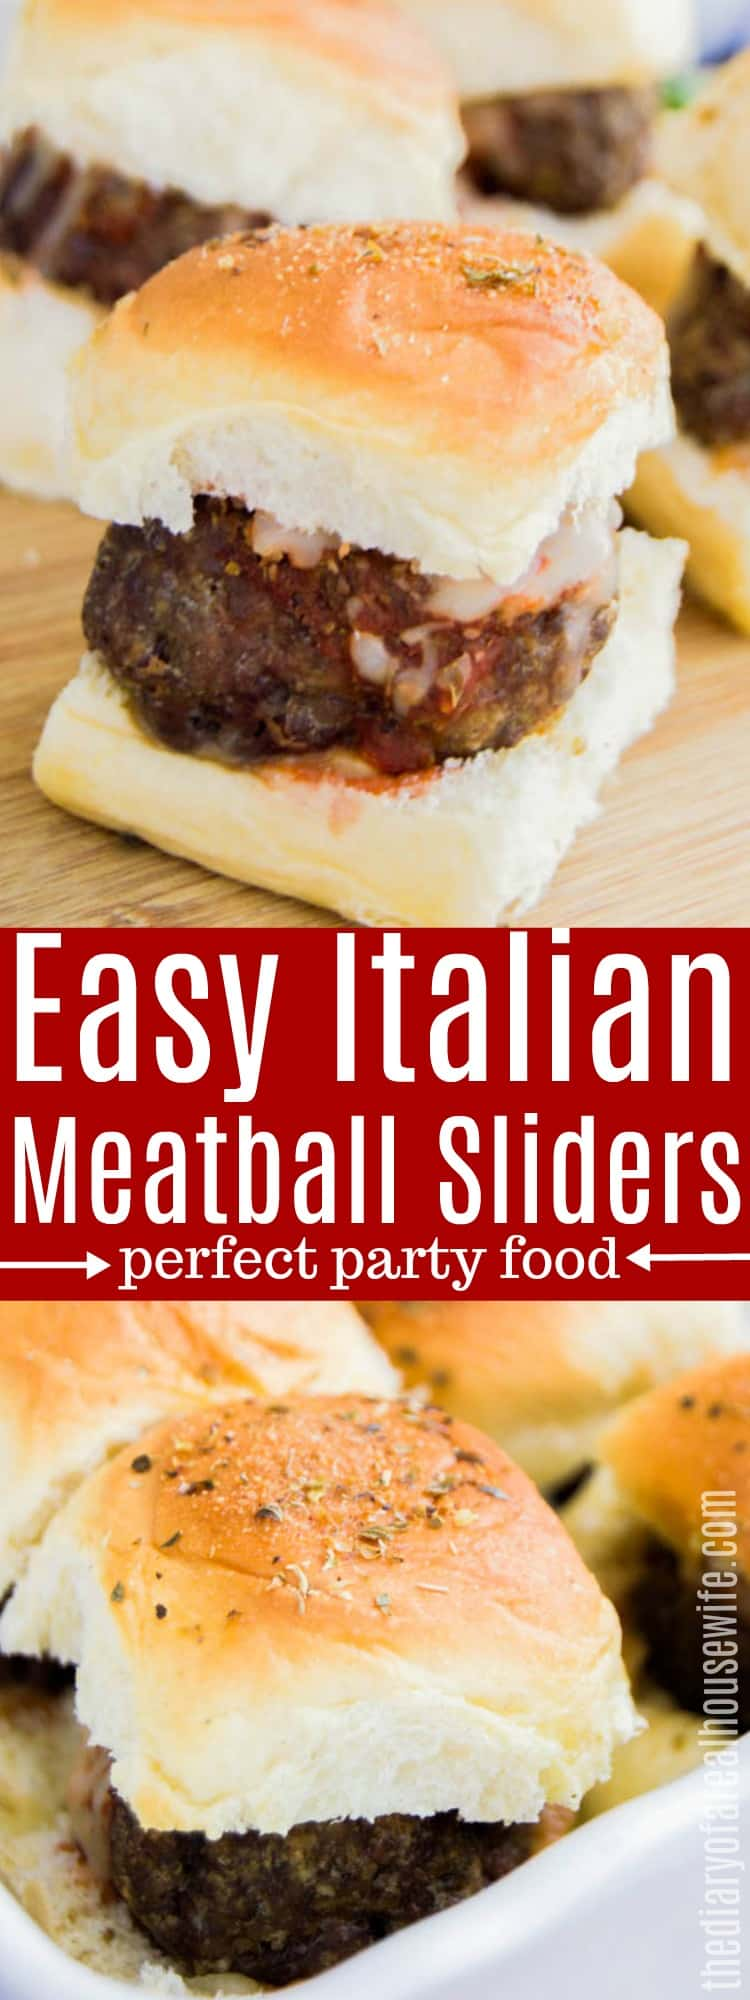 Meatball Italian Sliders